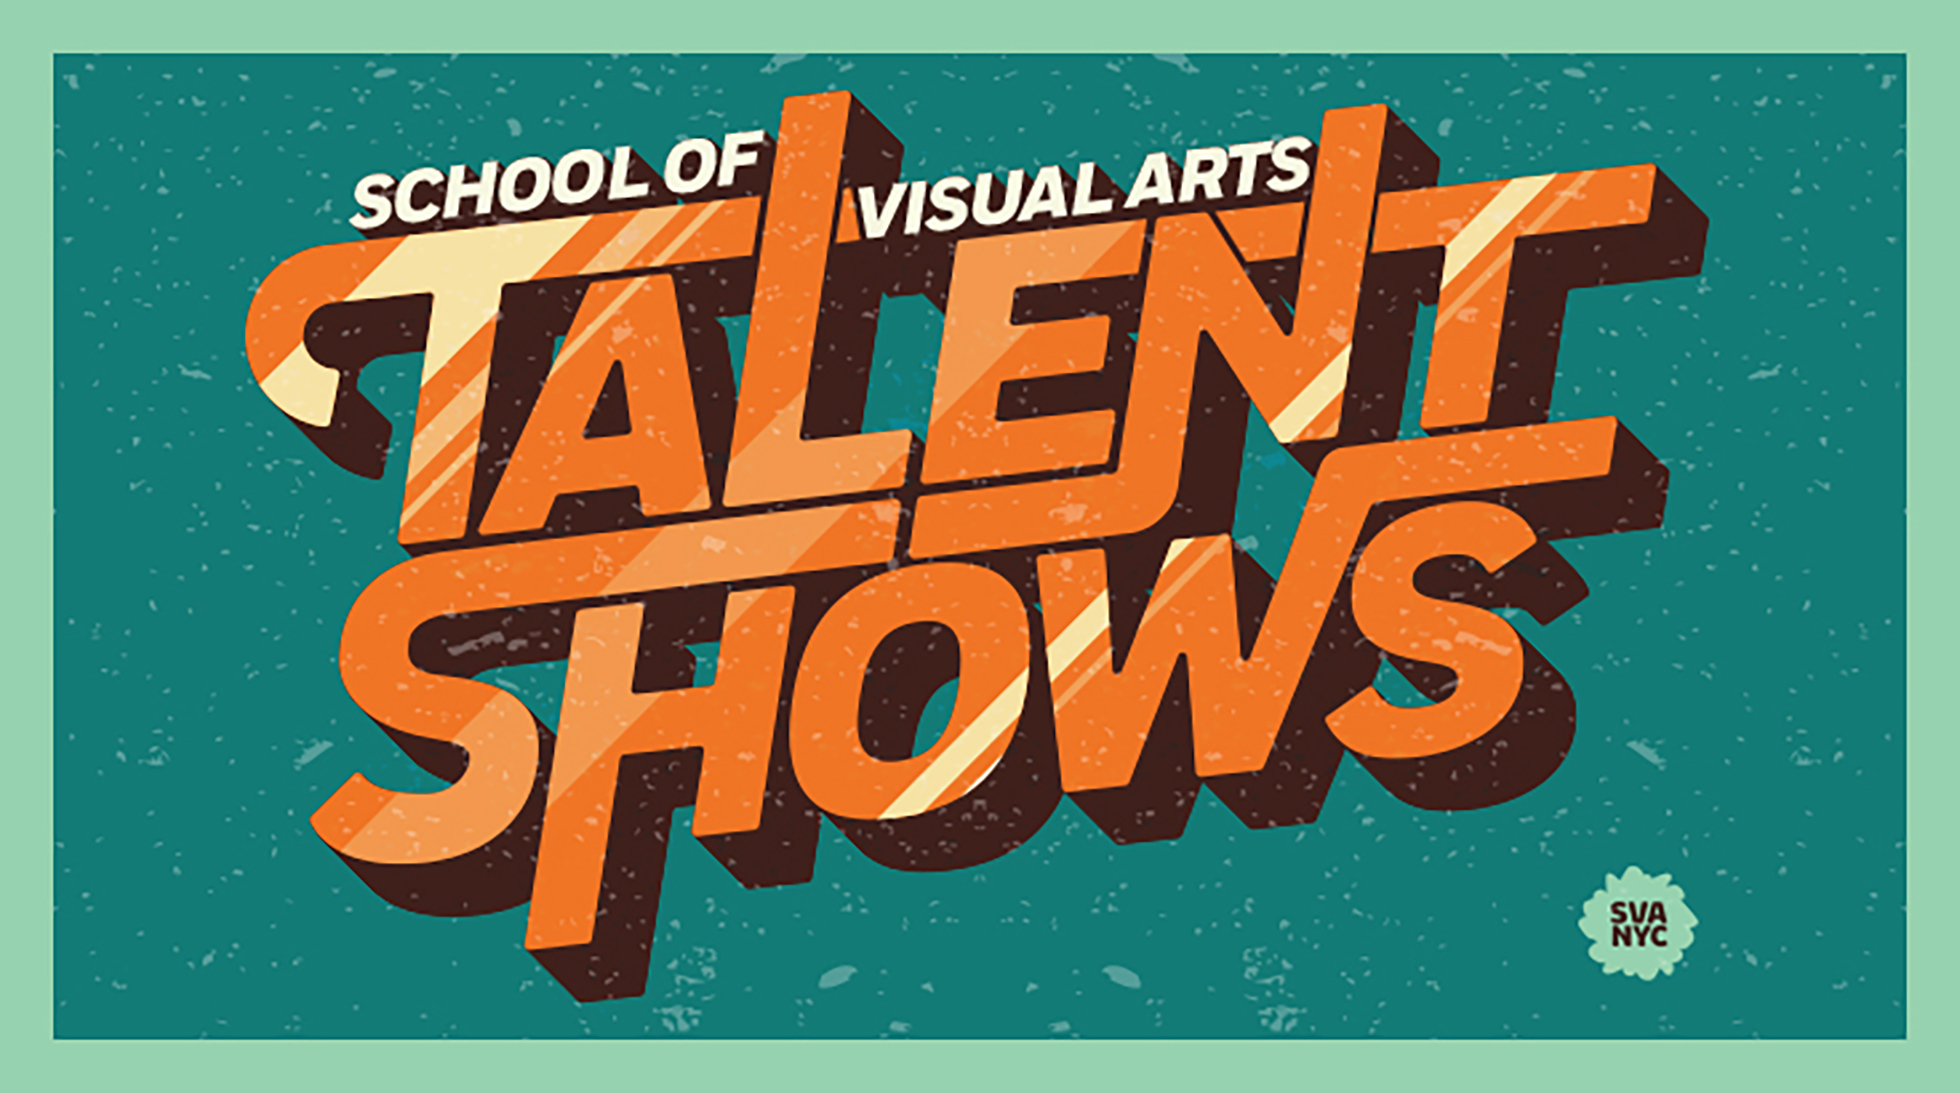 The text-based logo for SVA Talent Shows.